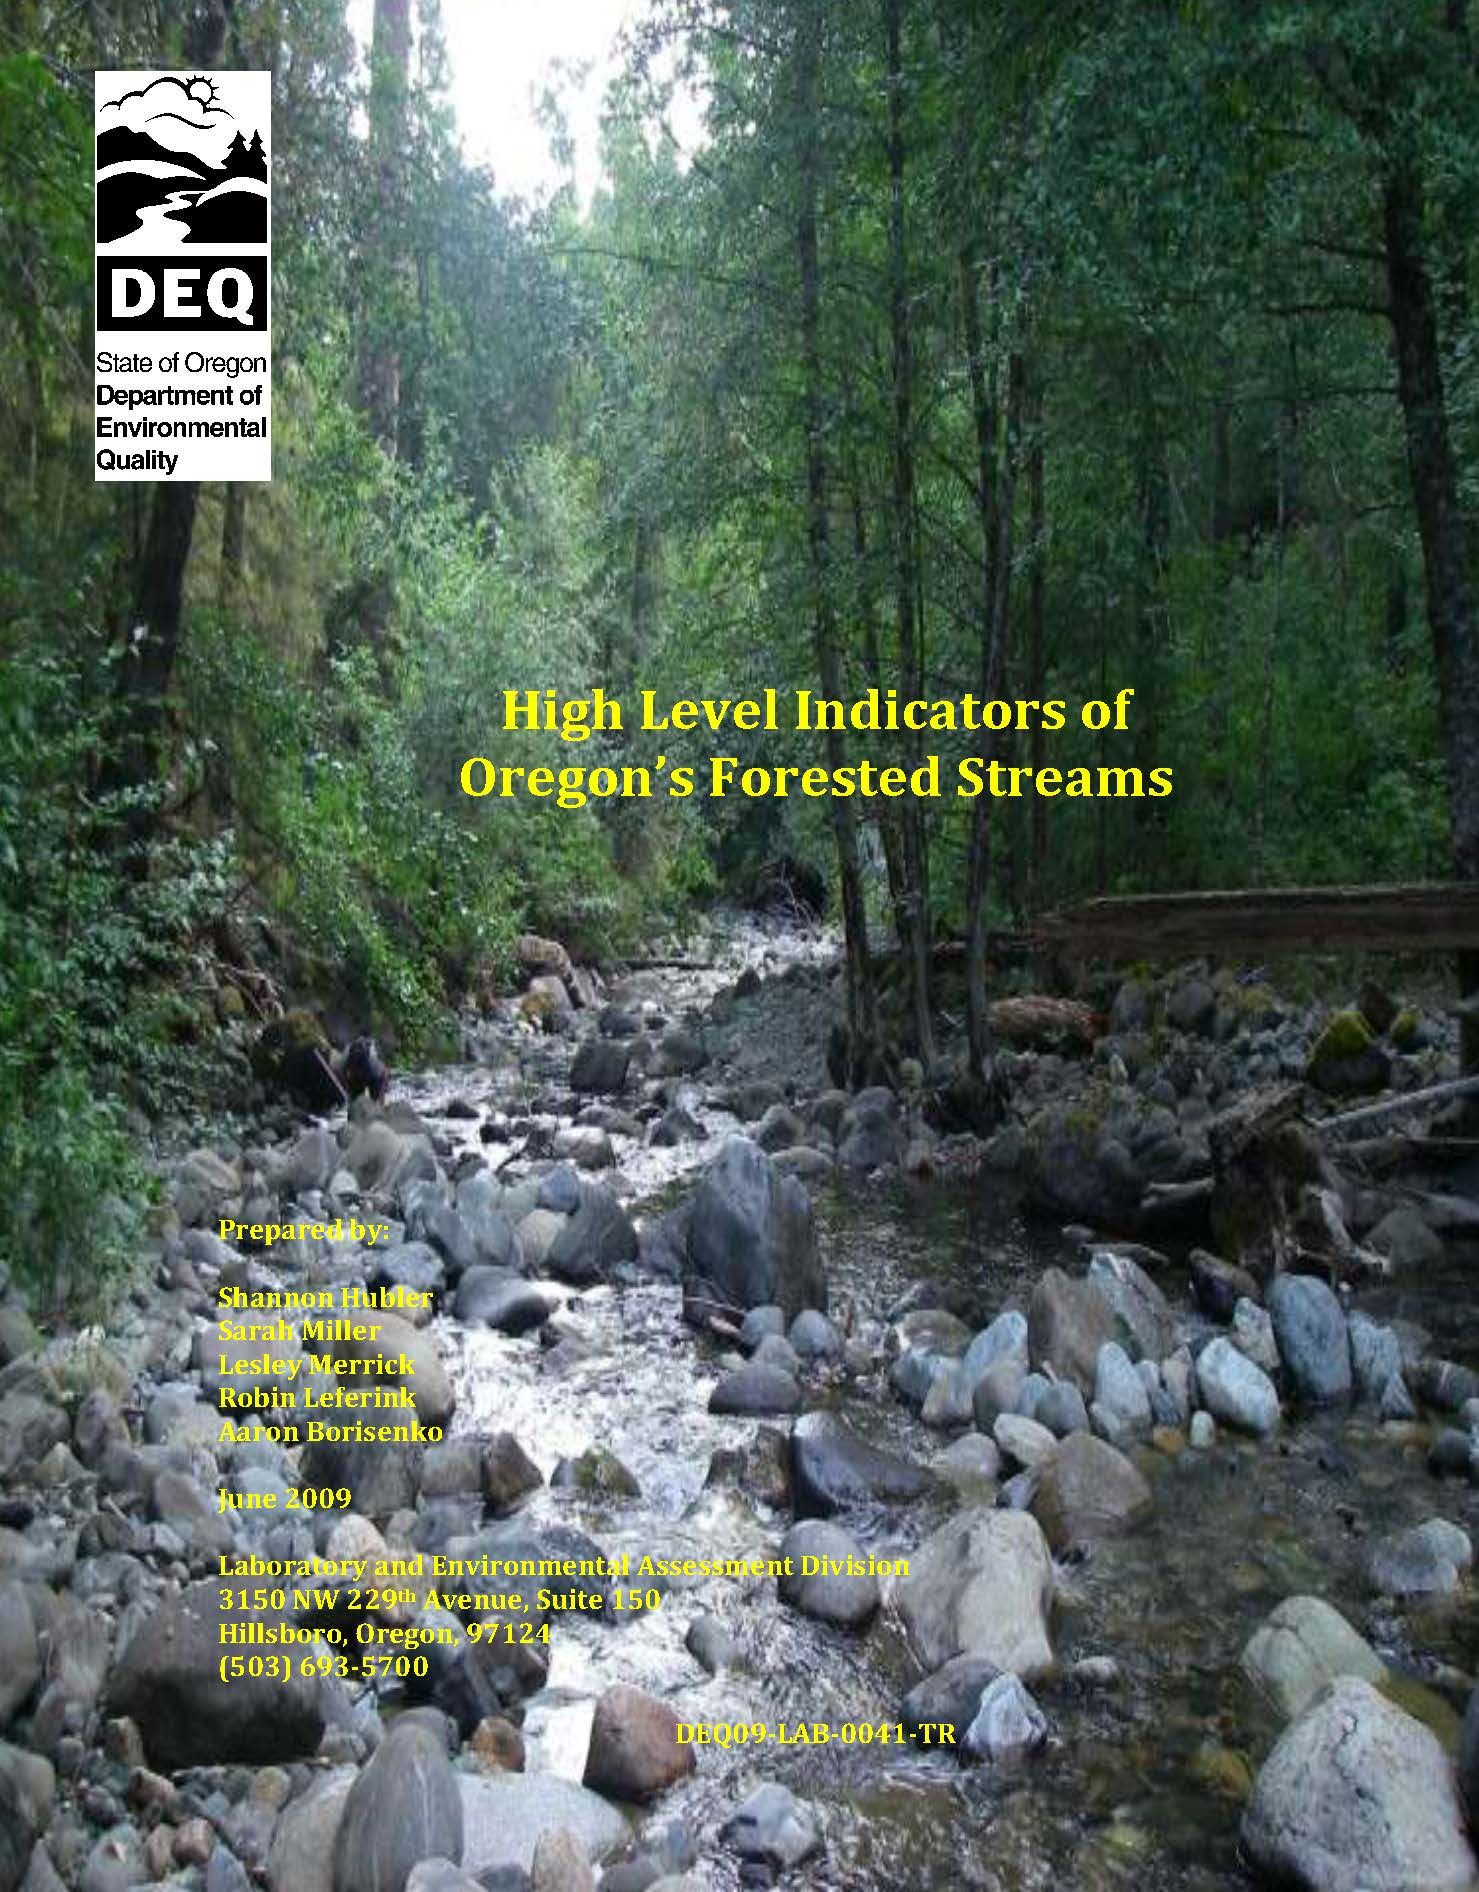 High level indicators of oregons forested streams by the